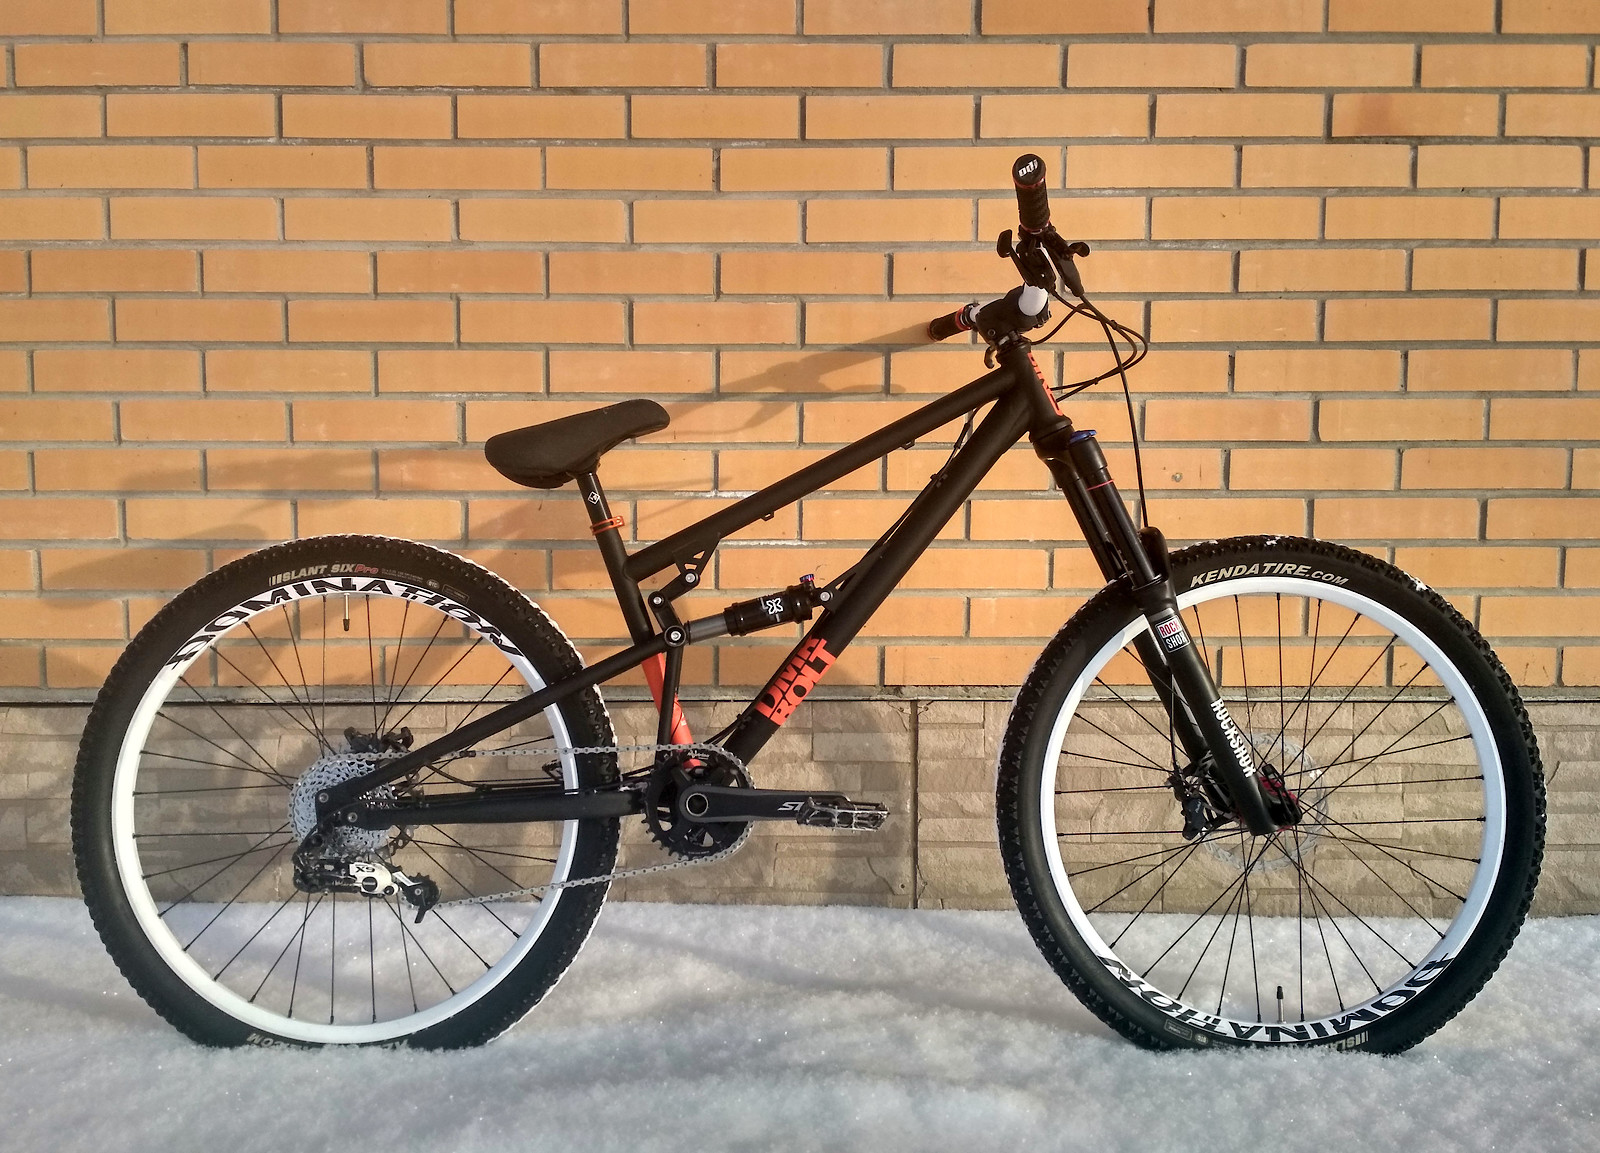 DMR Bolt - Yoba_Rider - Mountain Biking Pictures - Vital MTB